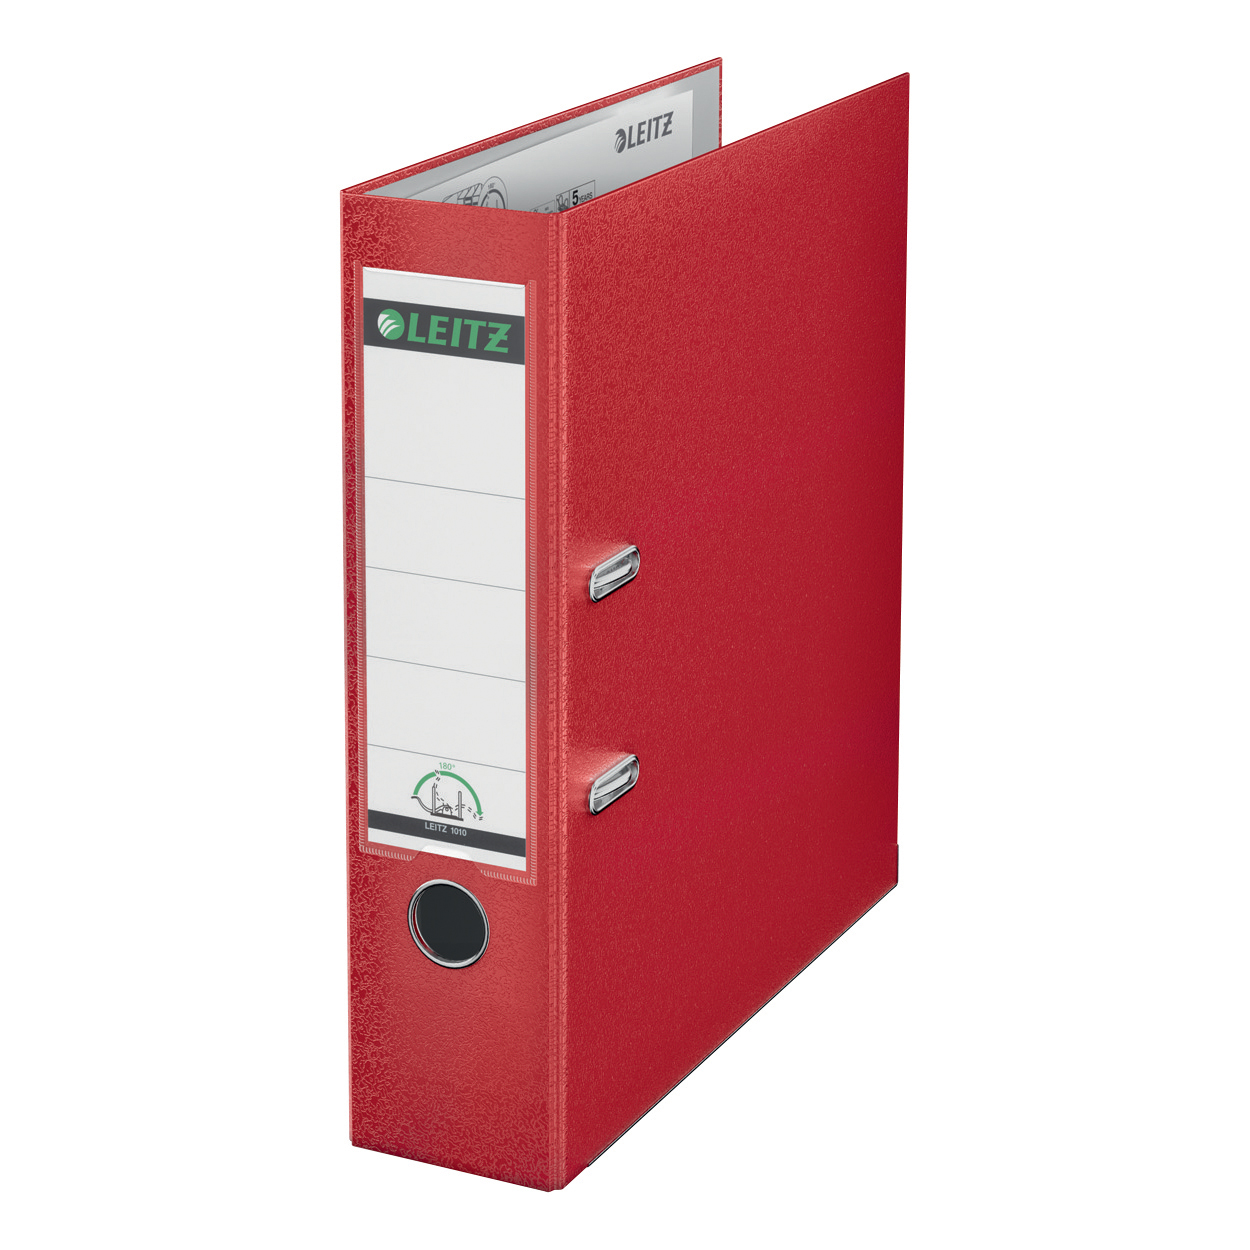 Leitz Lever Arch File Plastic 80mm Spine Foolscap Red Ref 11101025 Pack 10